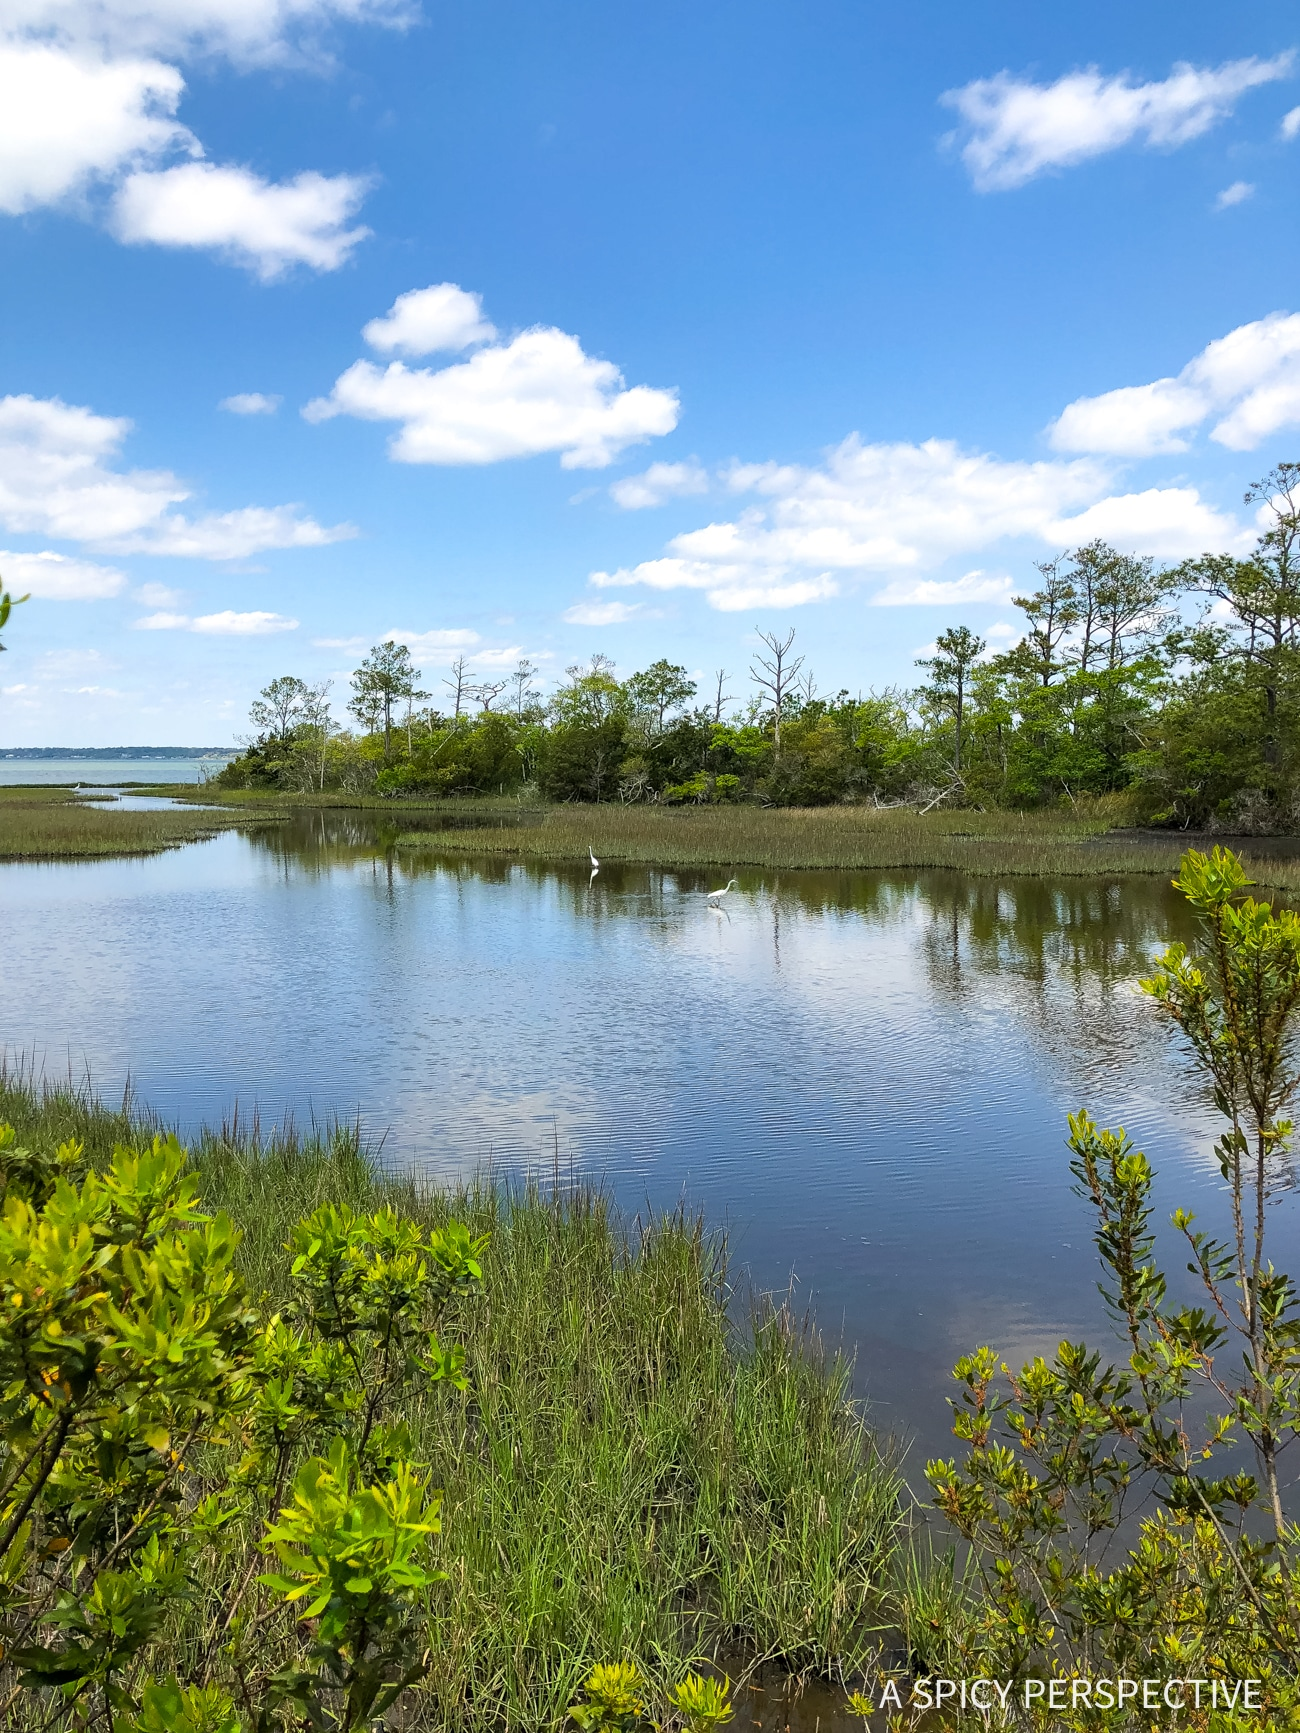 Instracostal Marshland - Why You Should Visit The Crystal Coast Outer Banks NC (Emerald Isle Vacation Travel Tips!)